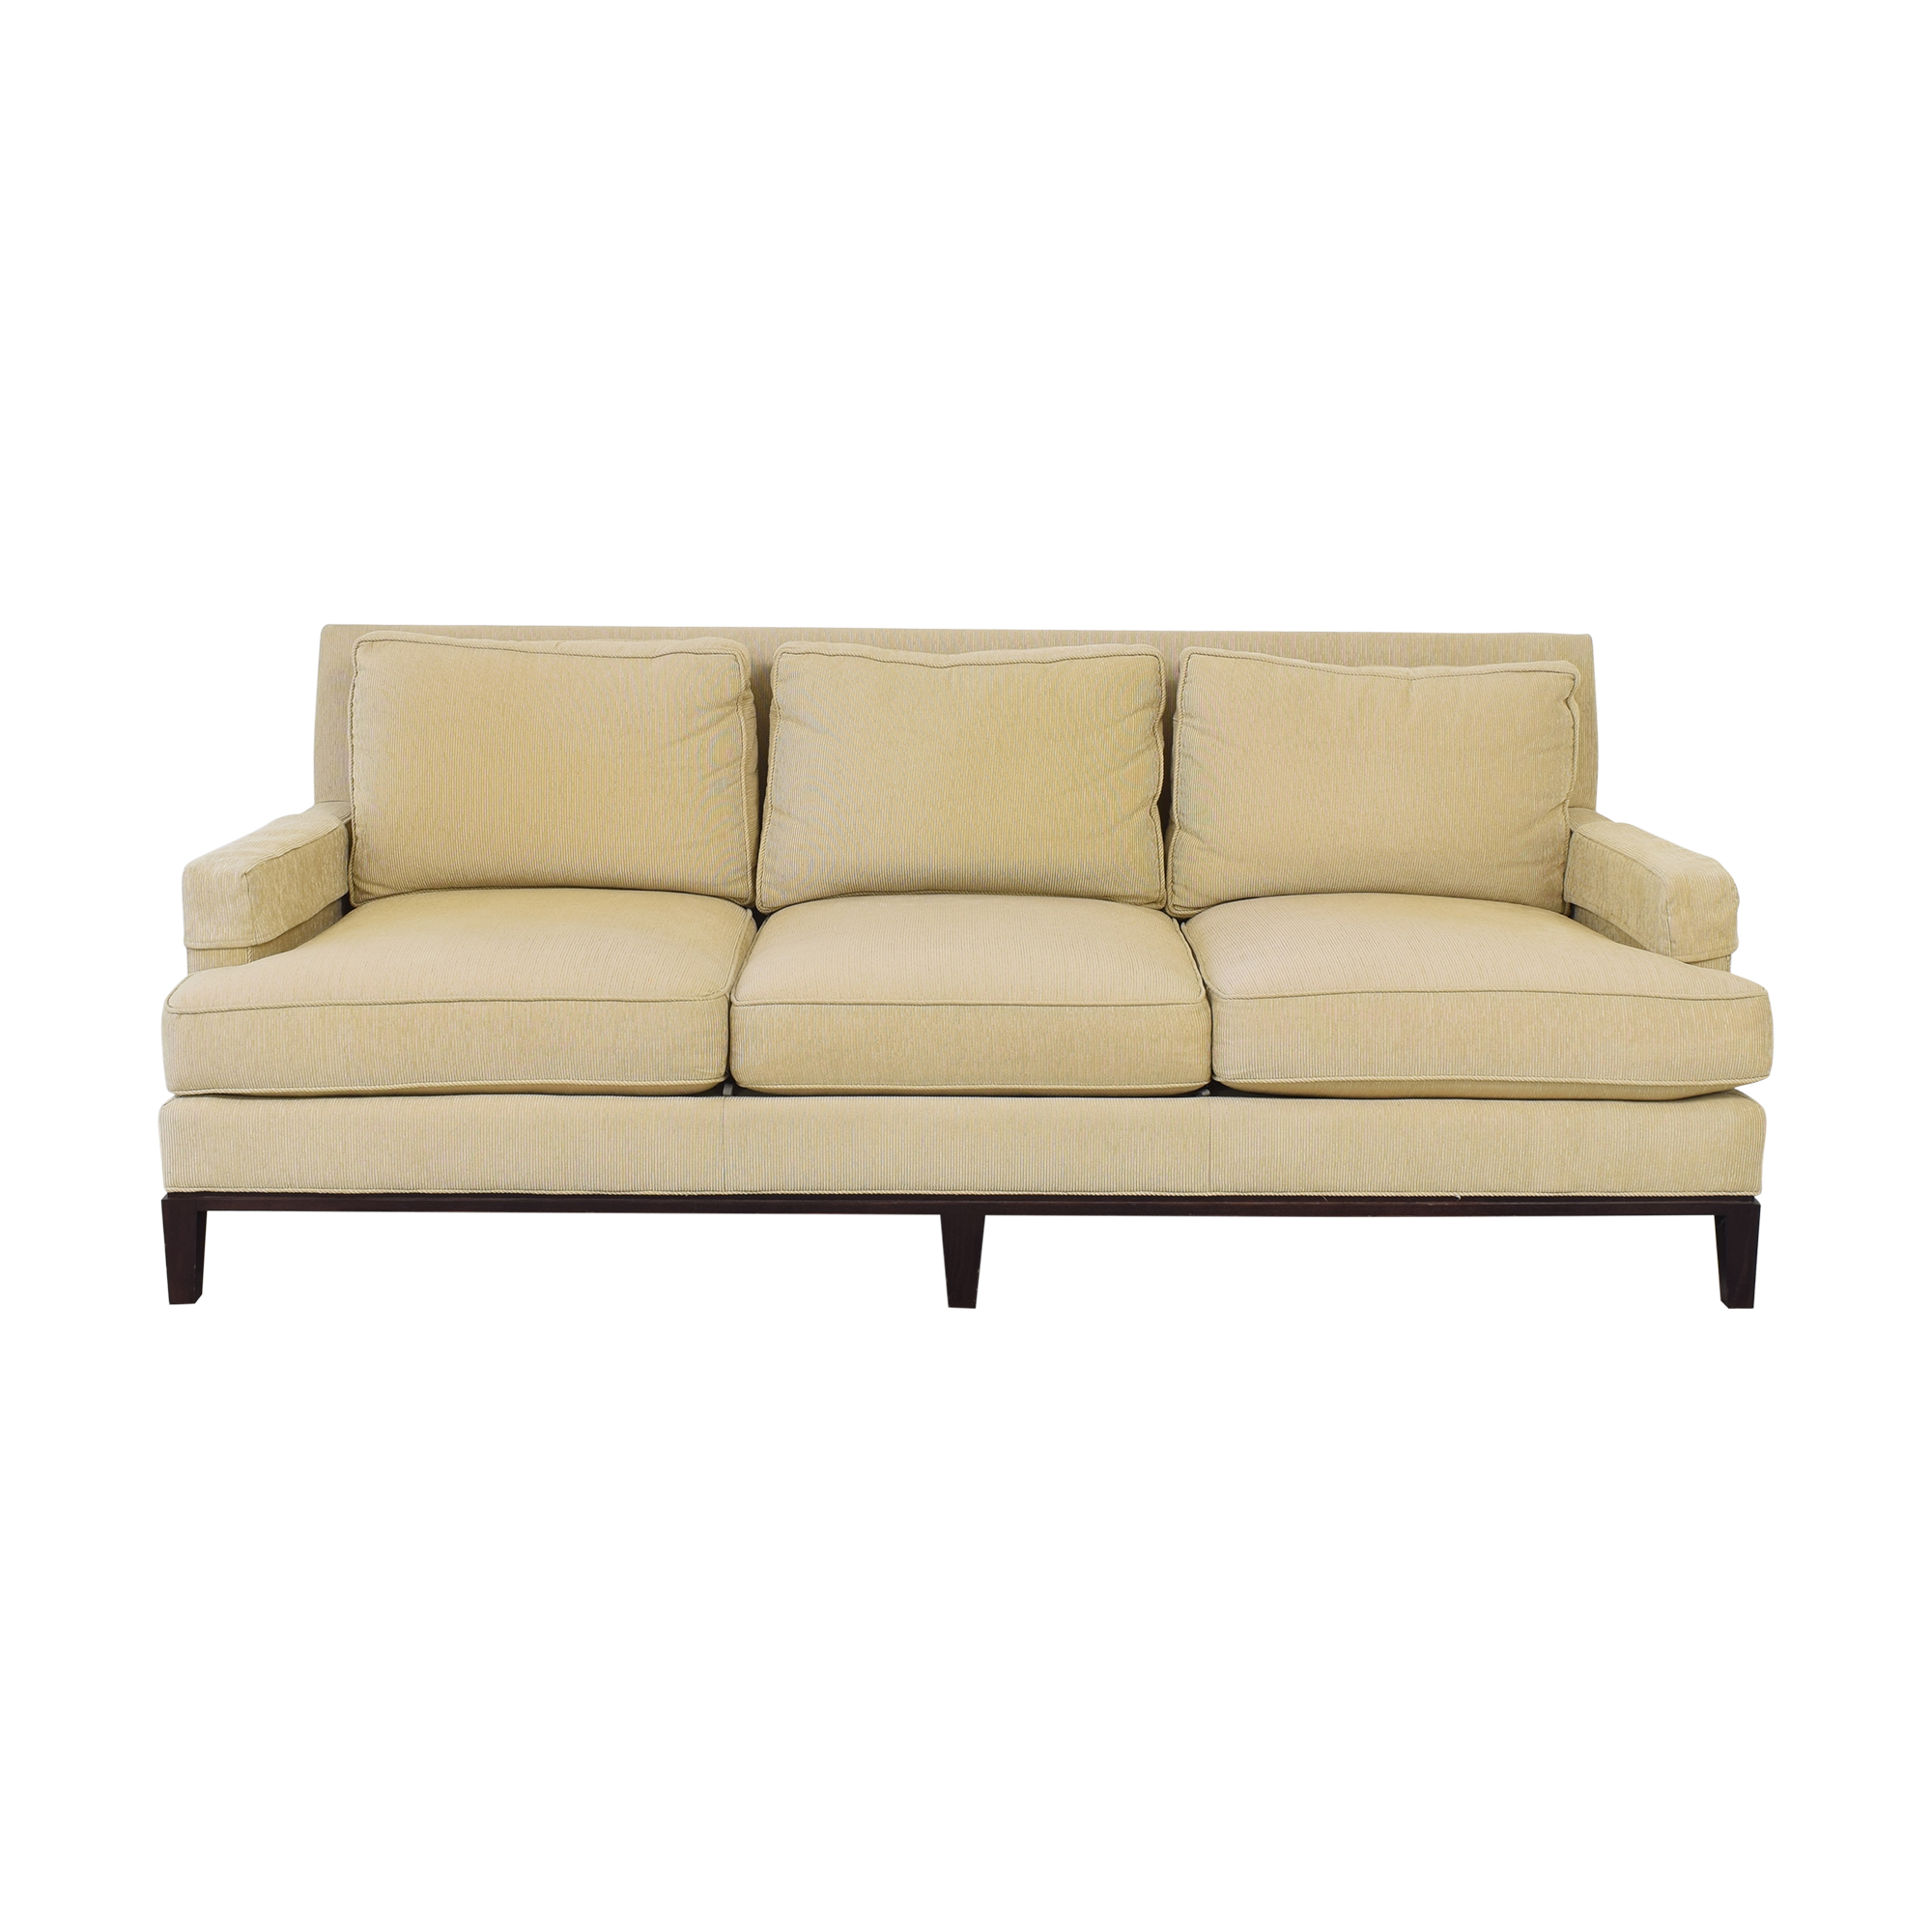 buy Vanguard Furniture Sterling Sofa Vanguard Furniture Classic Sofas